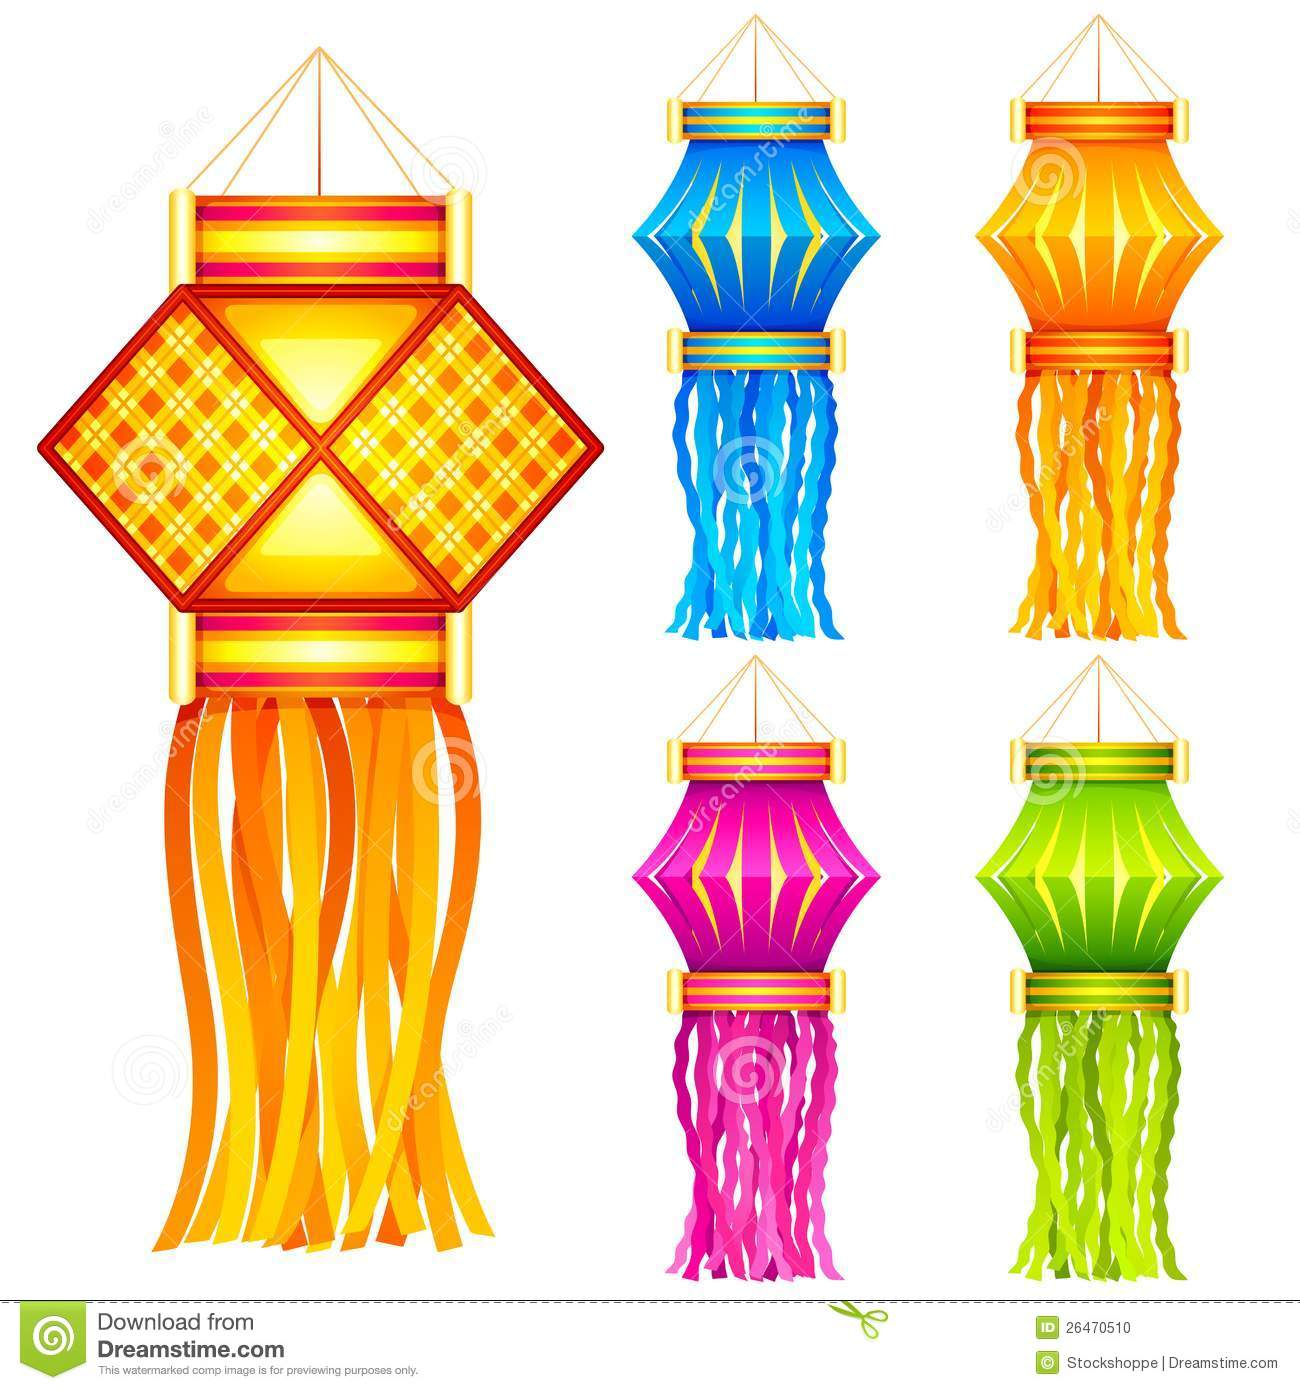 Hanging candle lantern clipart.